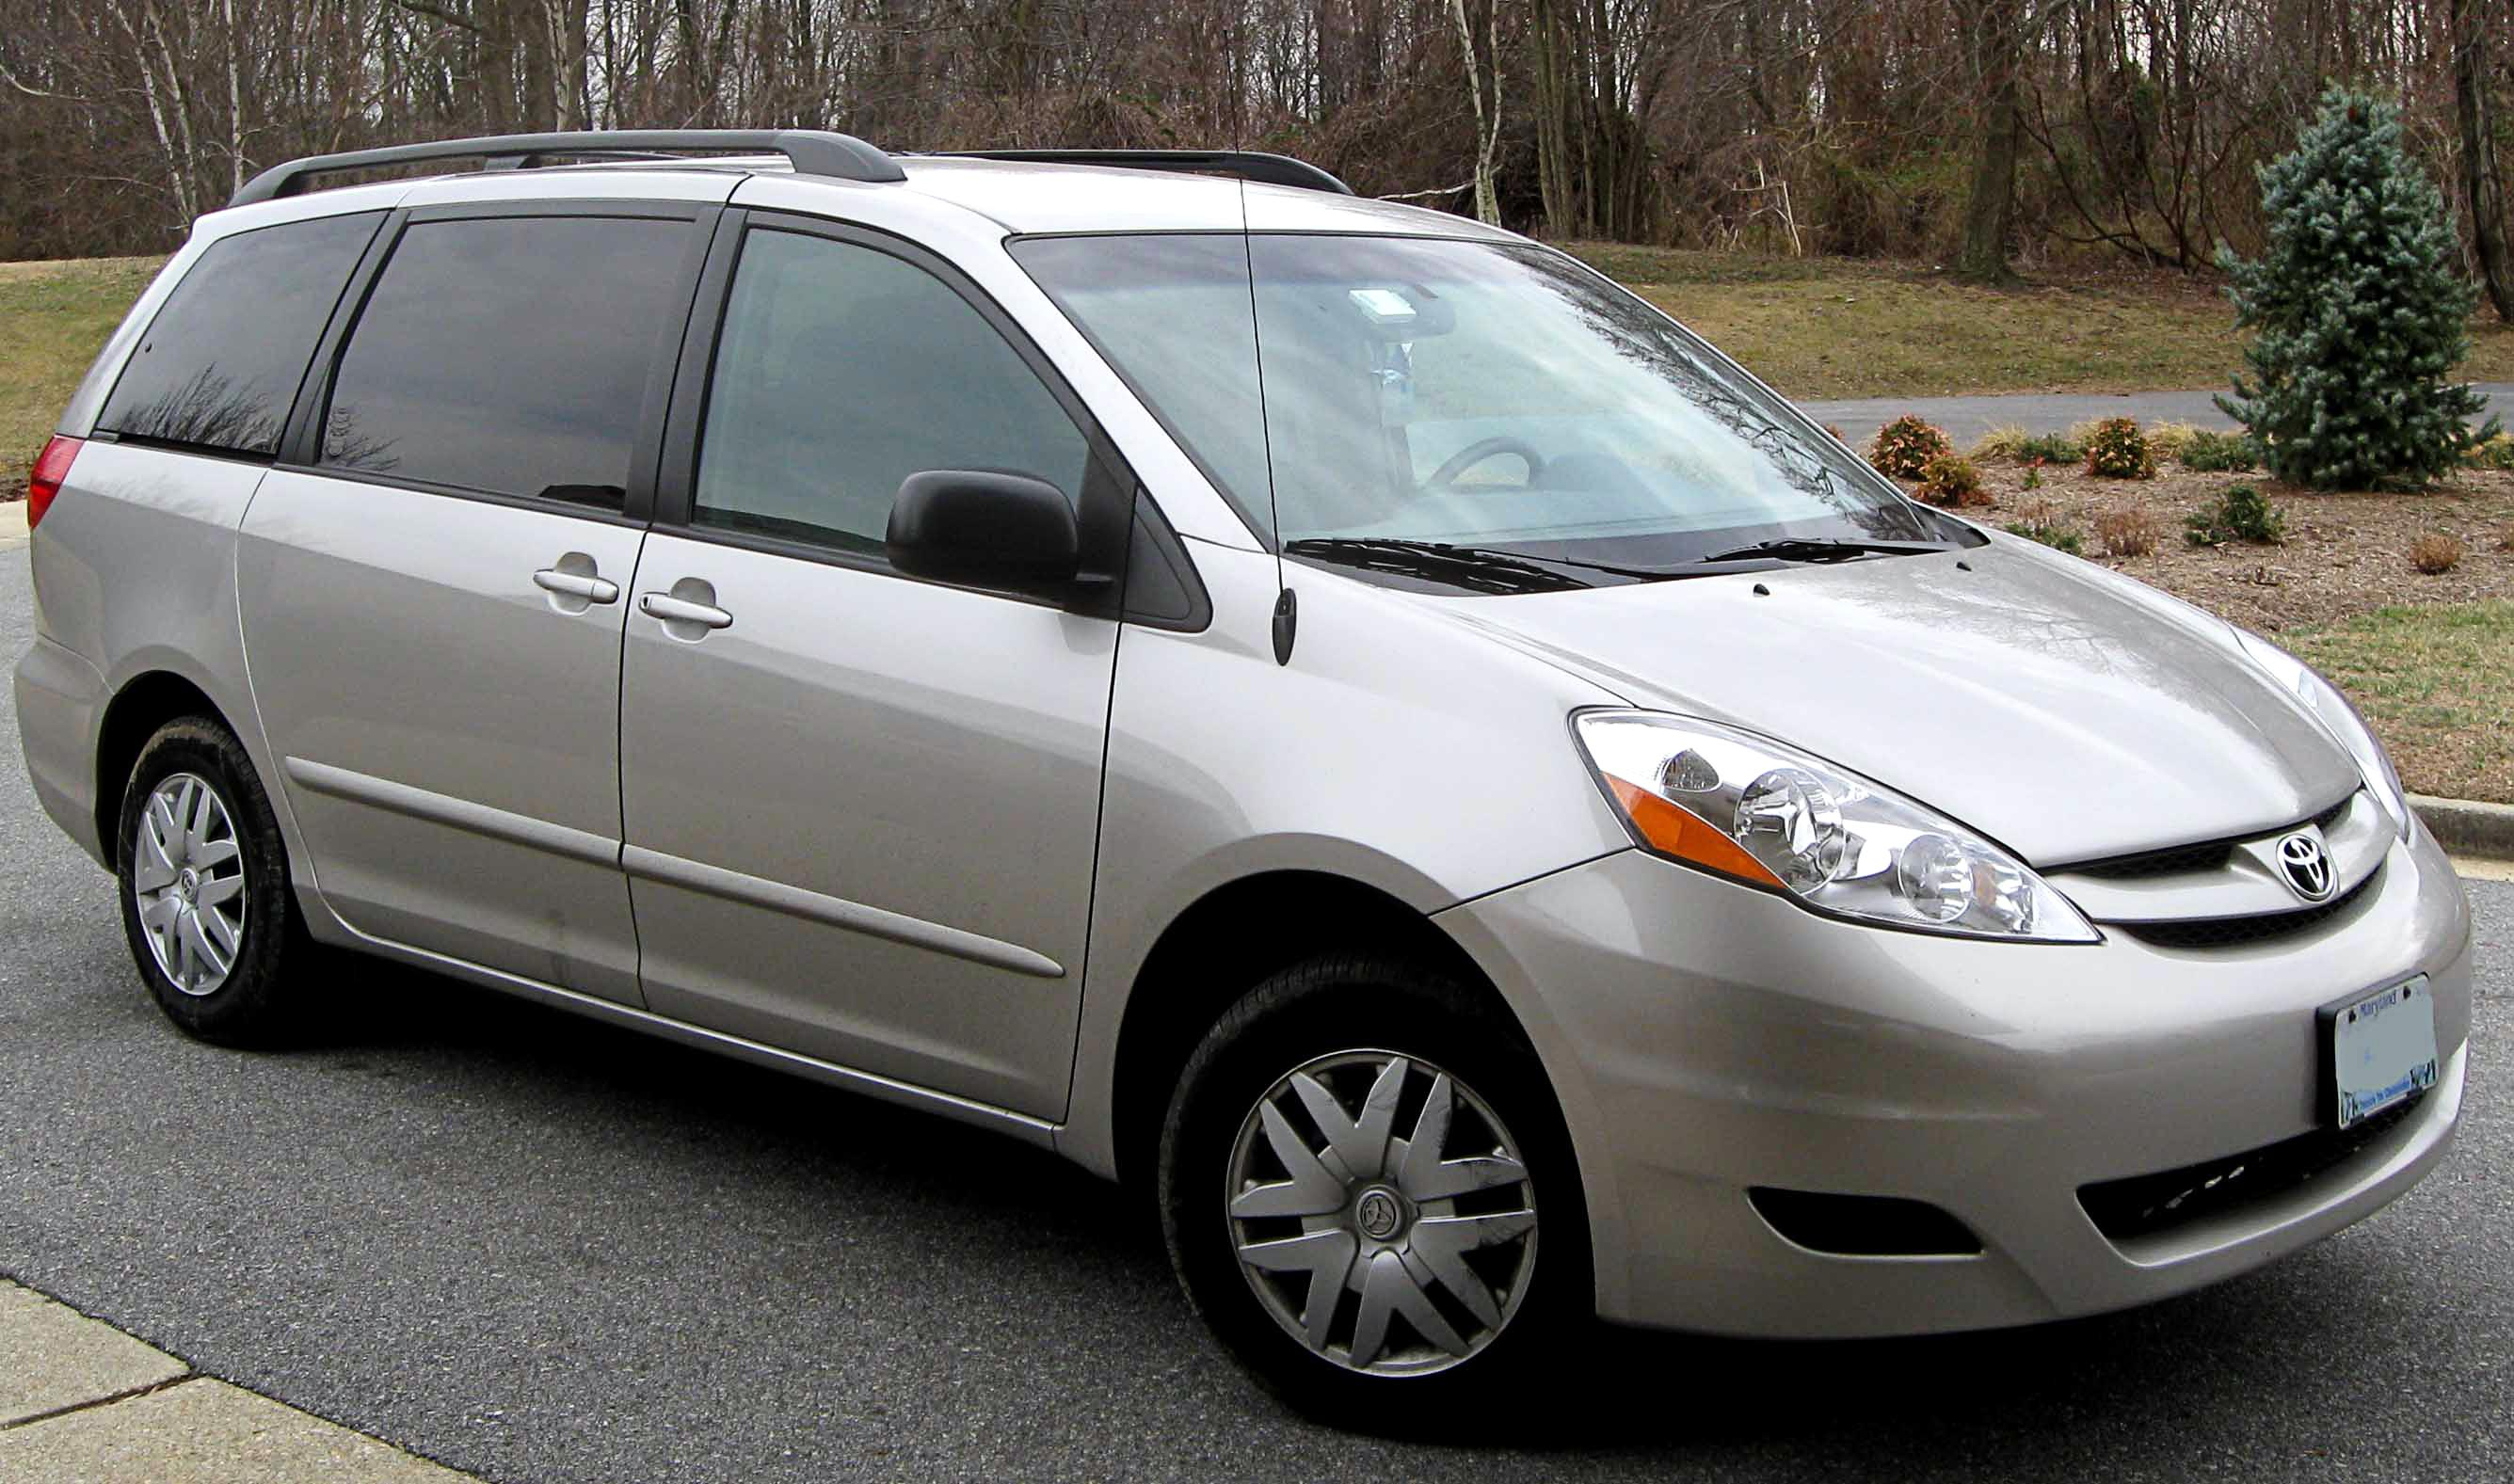 Toyota Sienna 2001 LE 6 Cylinder Manafacture Control?